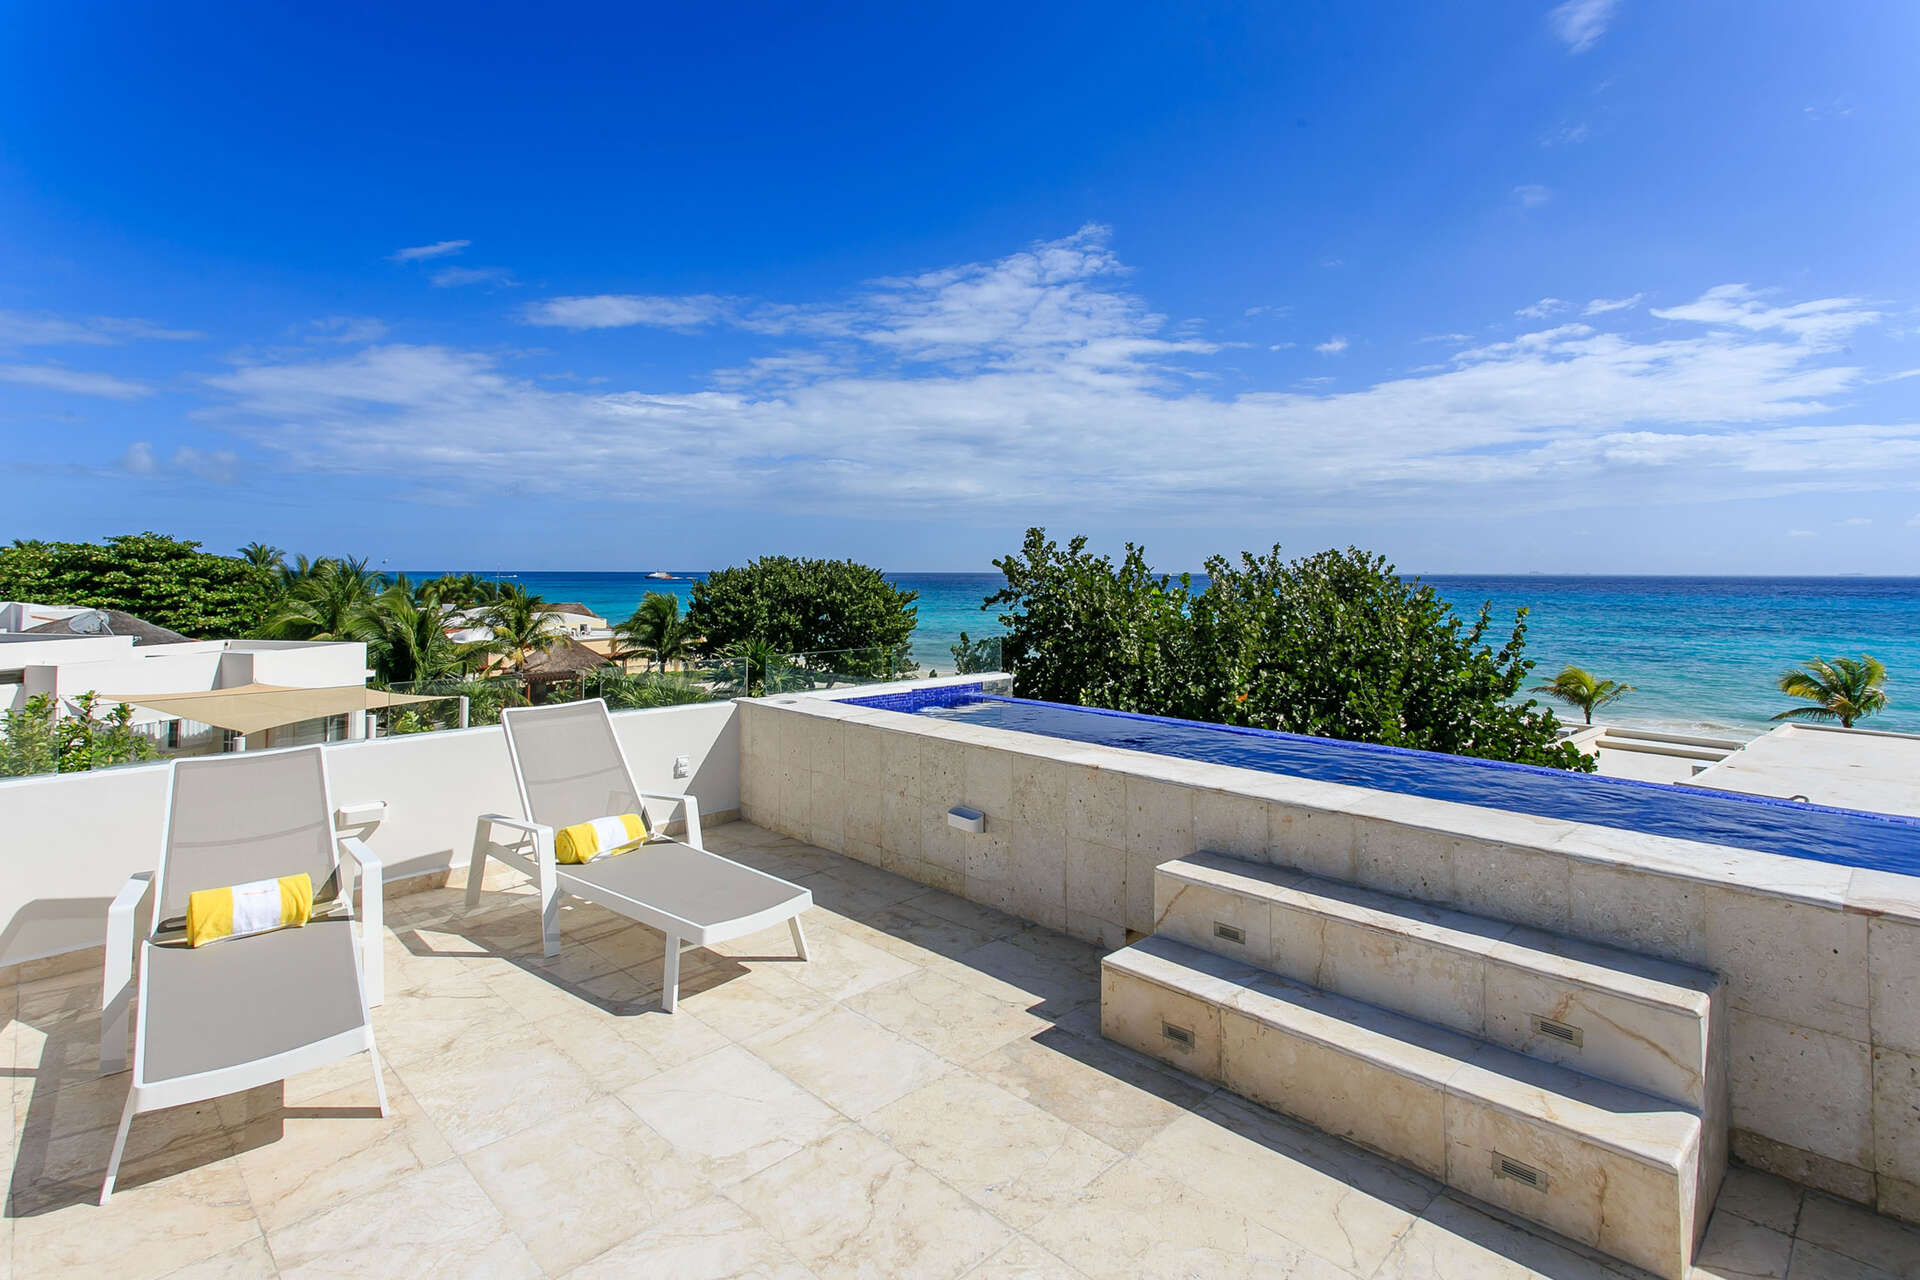 Luxury vacation rentals mexico - Riviera maya - Playa del carmen - Villa Unica - Image 1/20